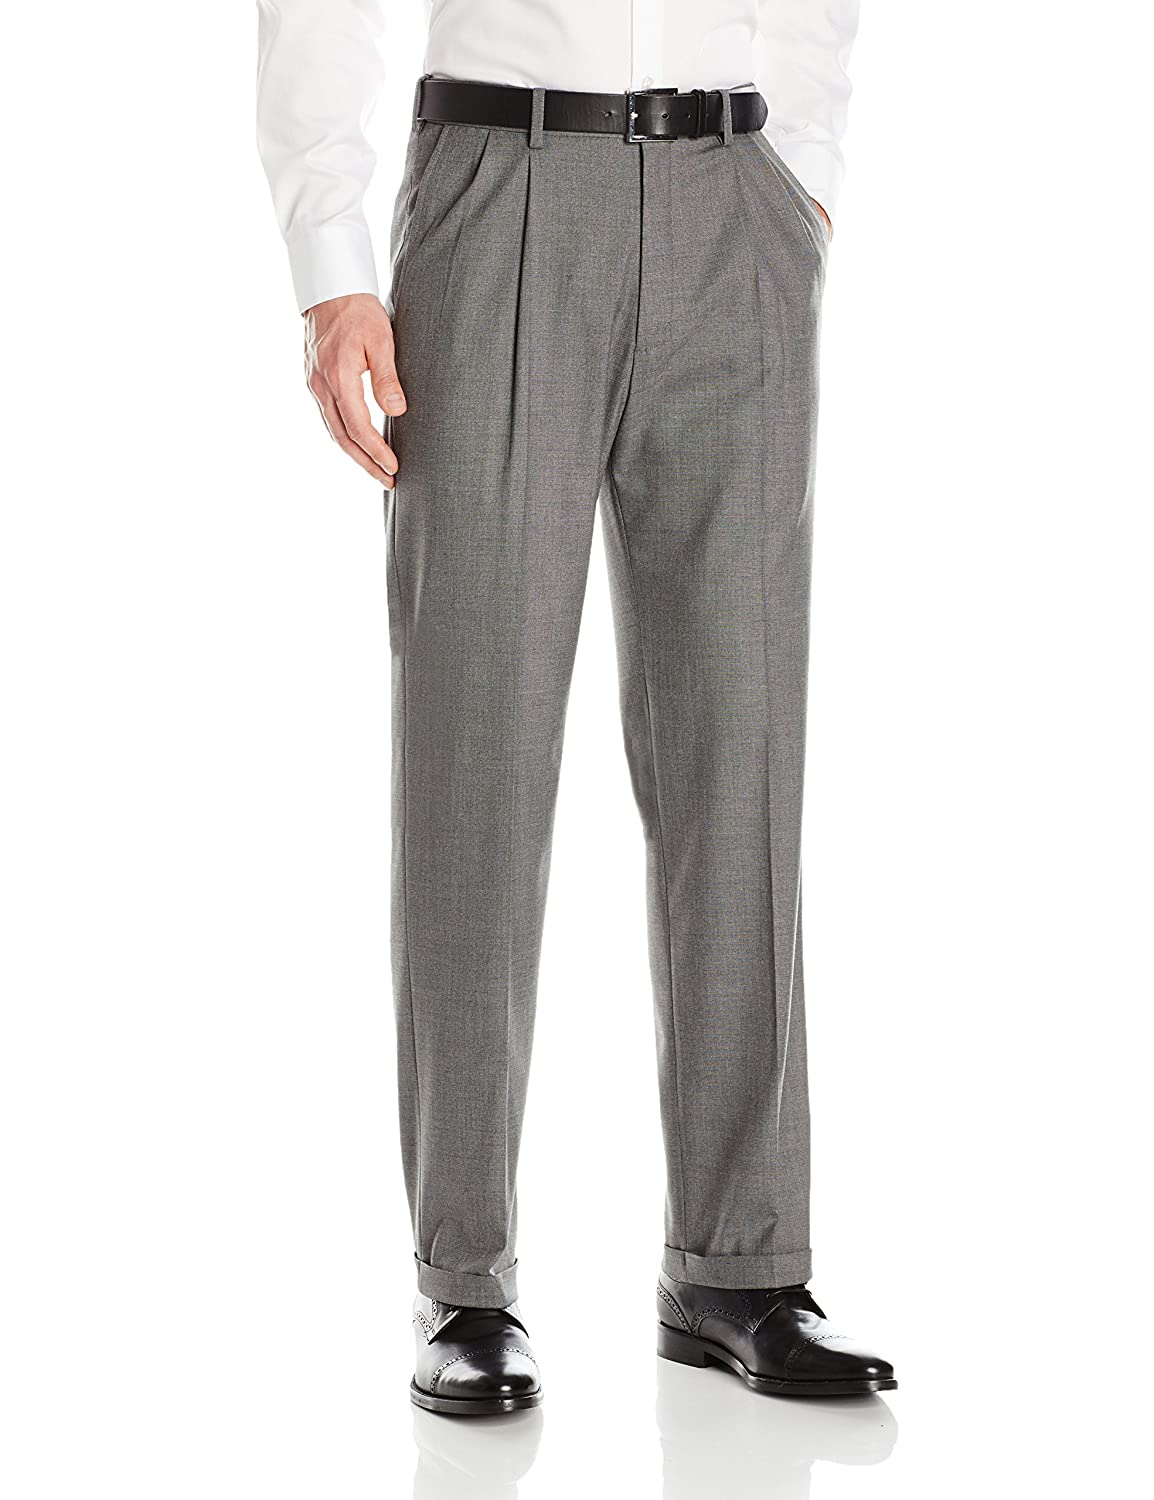 Men's Vintage Pants, Trousers, Jeans, Overalls J.M. Haggar Mens Premium Stretch Classic Fit Pleat Front Pant $57.39 AT vintagedancer.com